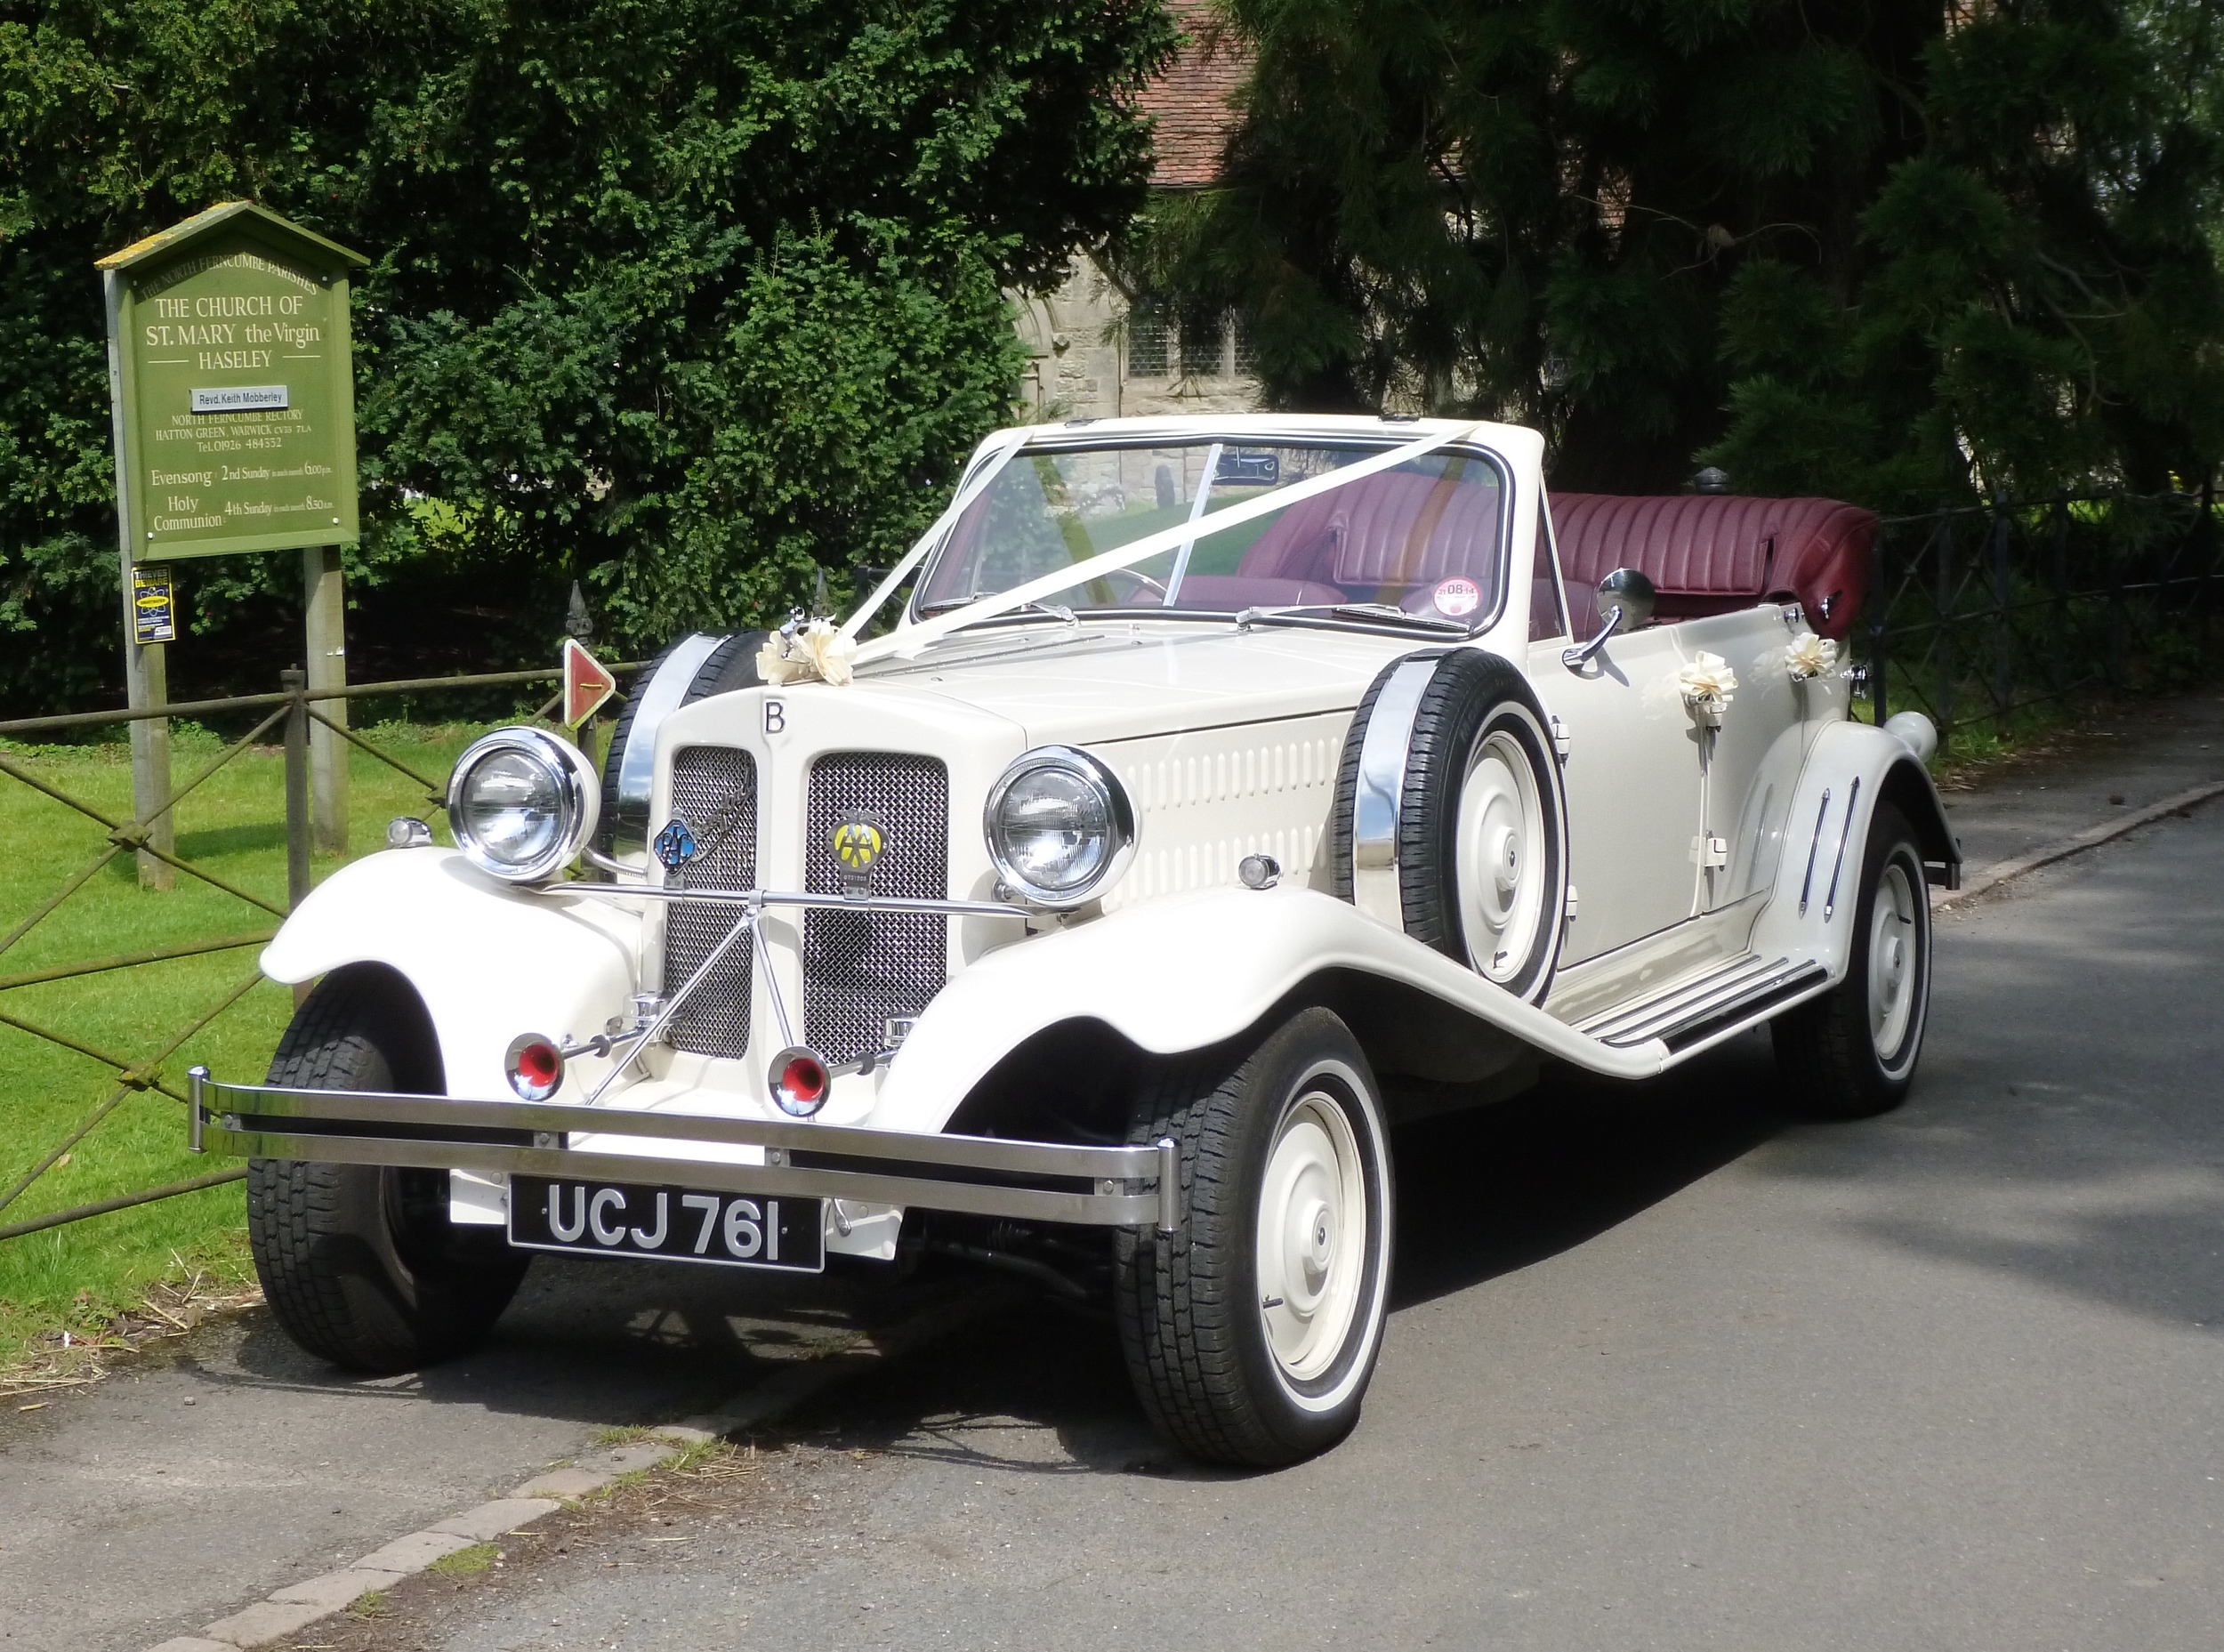 The Beaufordwith hood down on a fine day. When raised the hood is very weather proof.